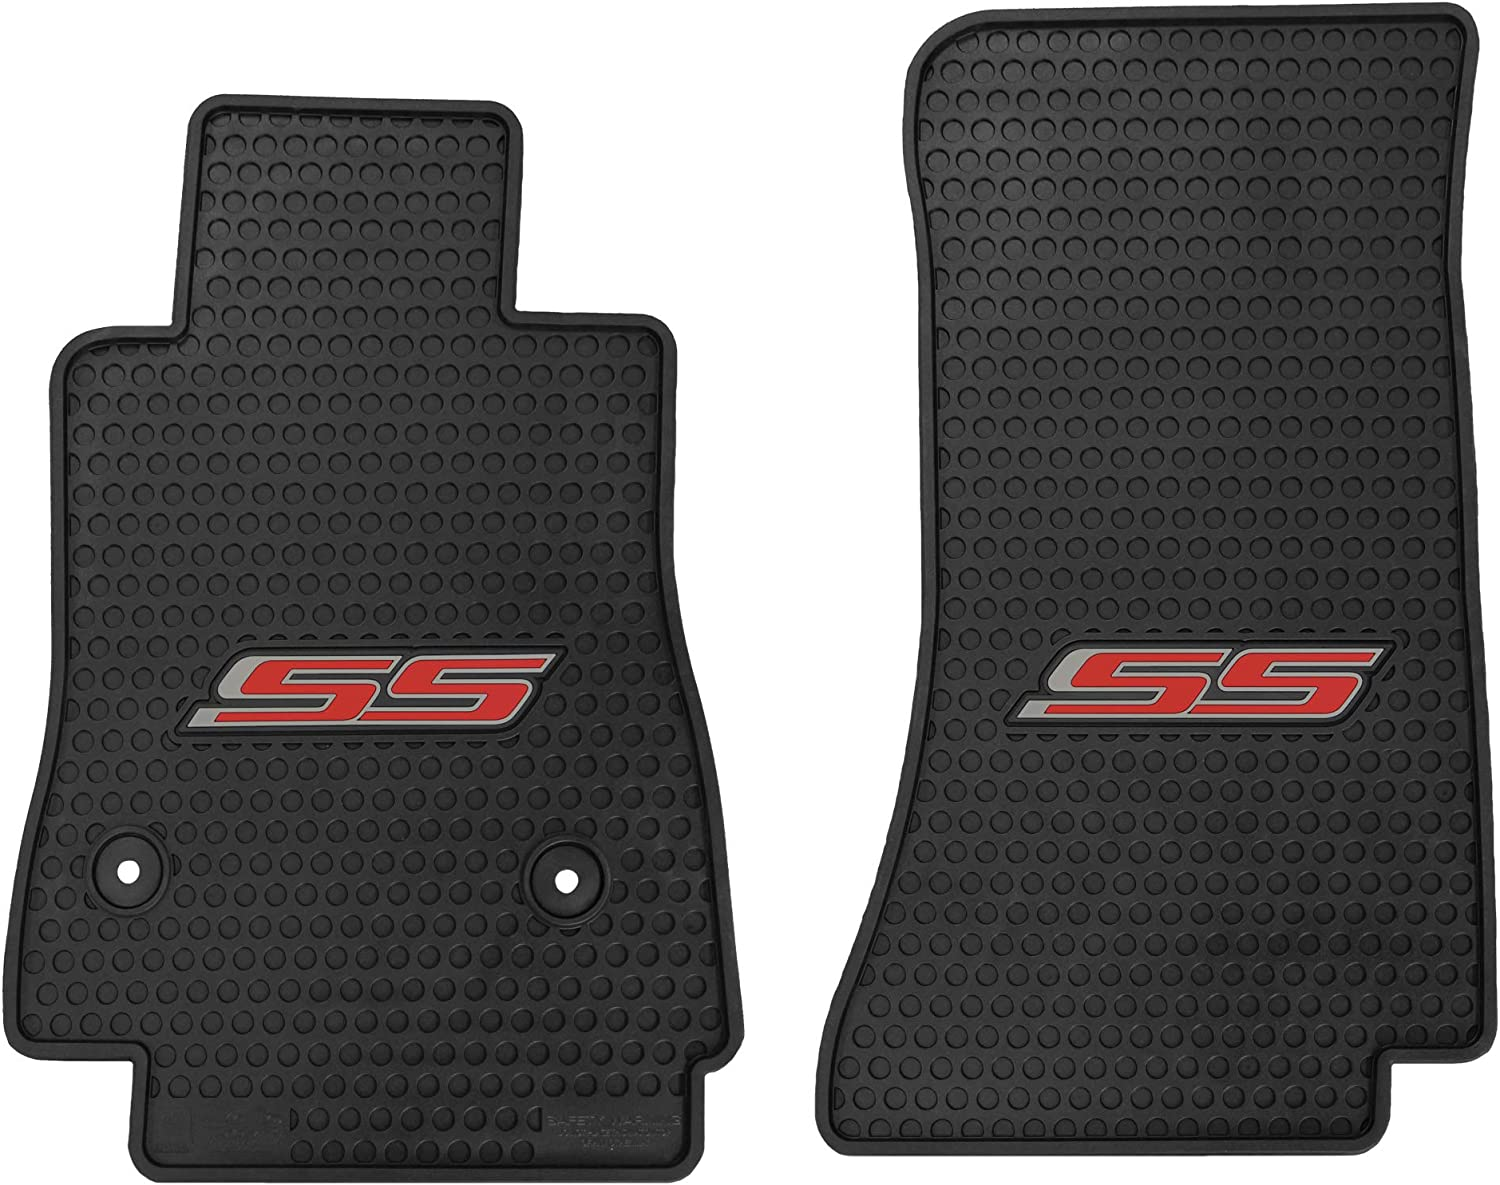 Lloyd Mats Signature Rubber Custom Floor Mats for Chevy Camaro 2016 Black, 2PC - Camaro SS ON